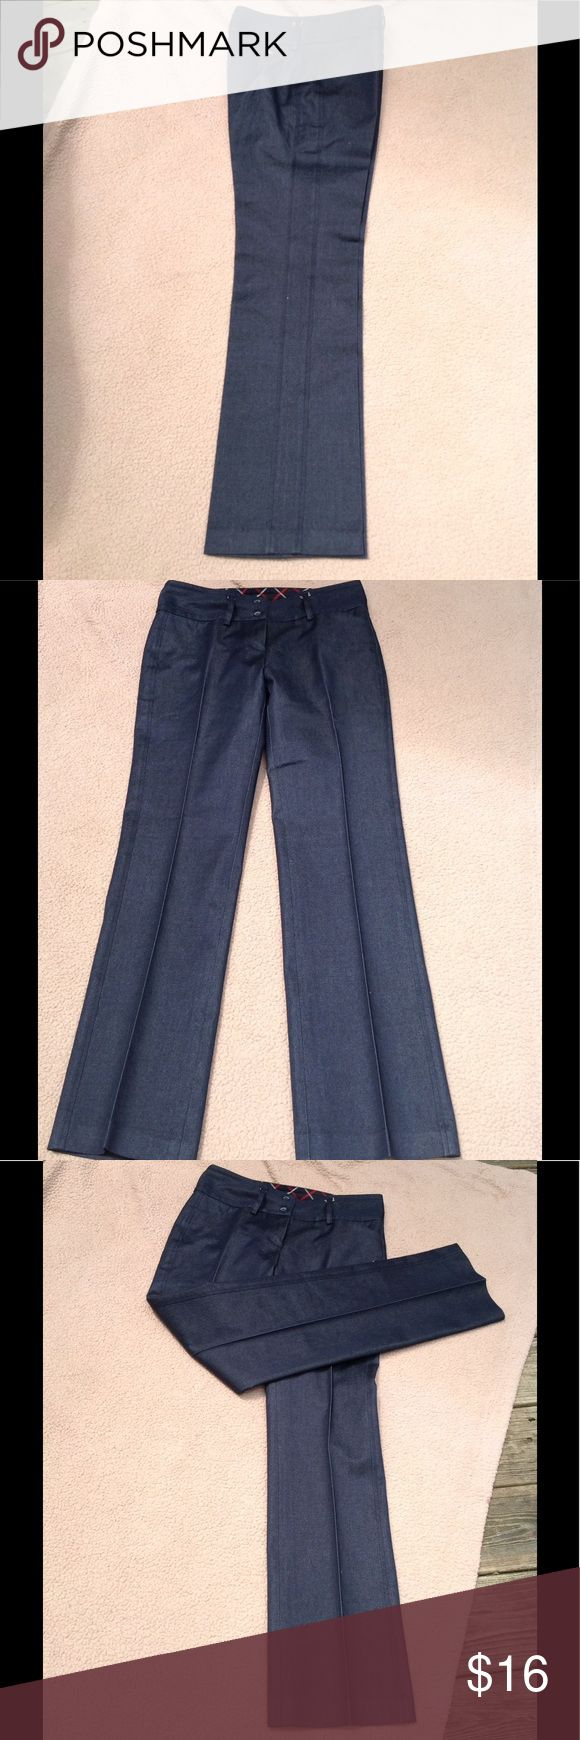 Tommy Hilfiger pants Tommy Hilfiger gray pant in great condition! Have been dry cleaned Tommy Hilfiger Pants Ankle & Cropped